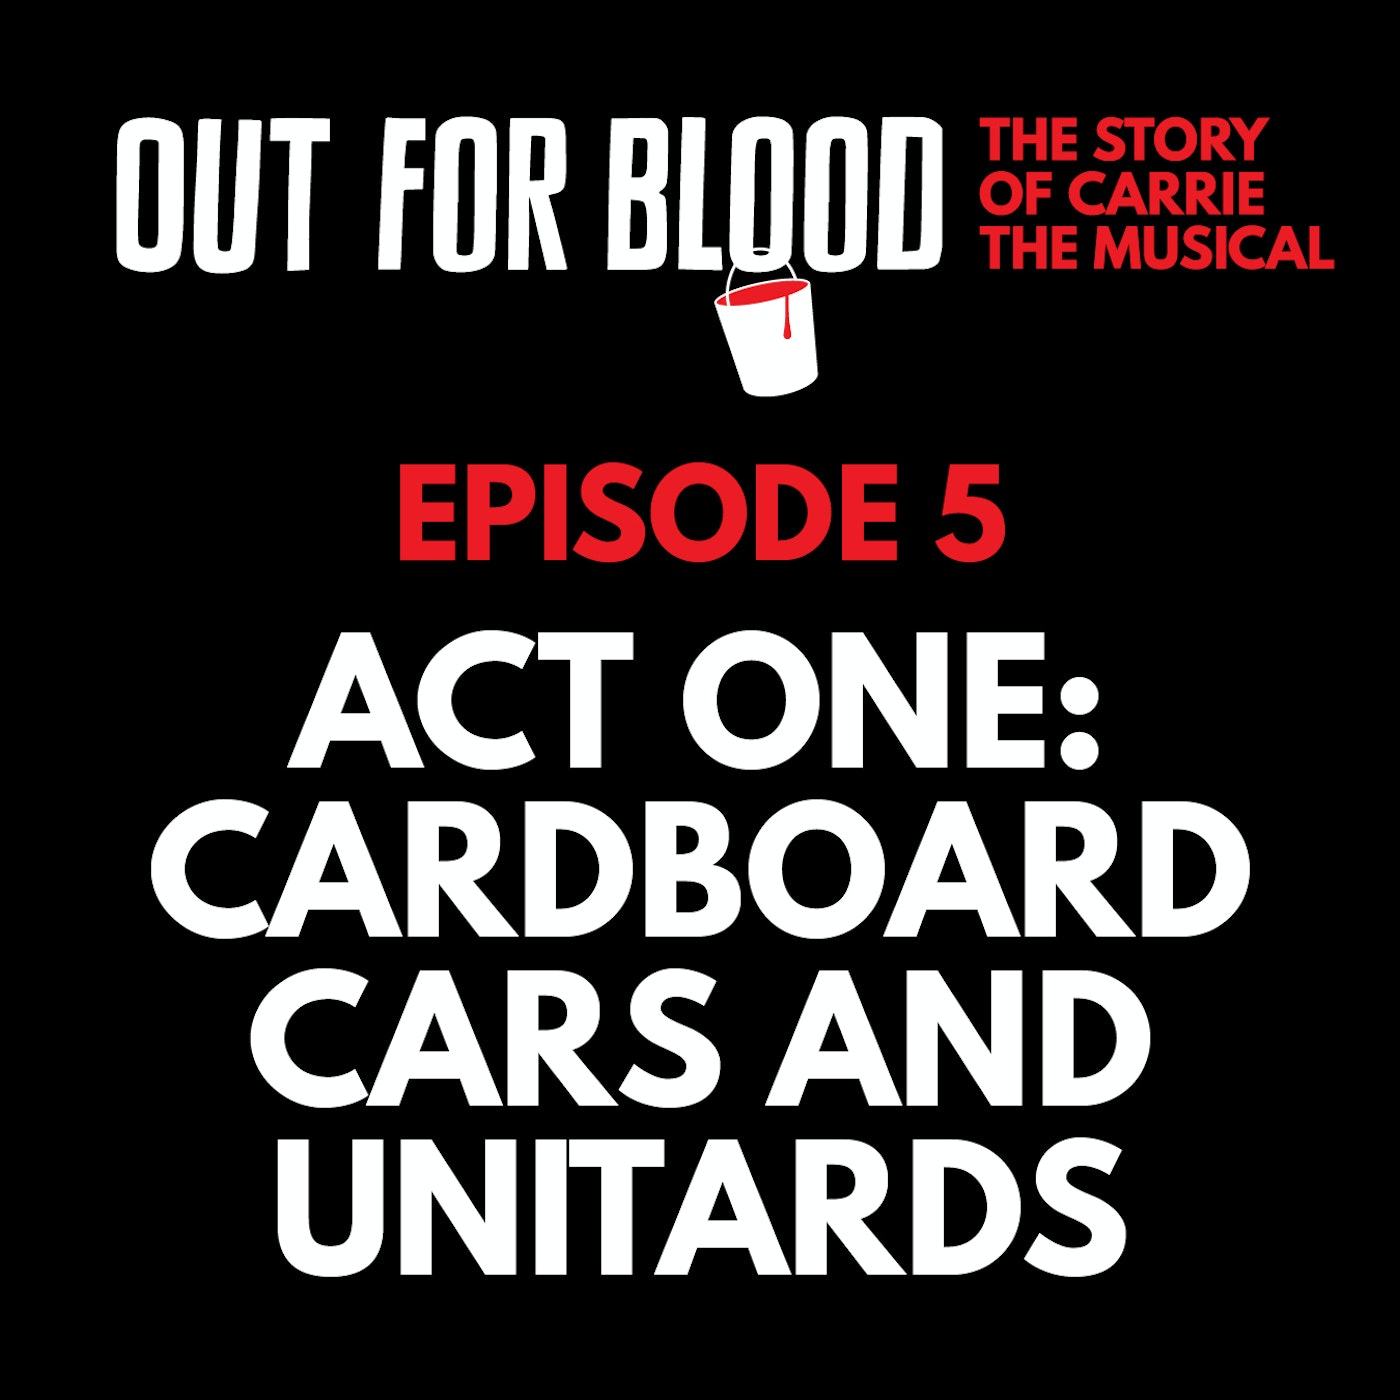 Chapter 5: Act One: Cardboard cars and unitards